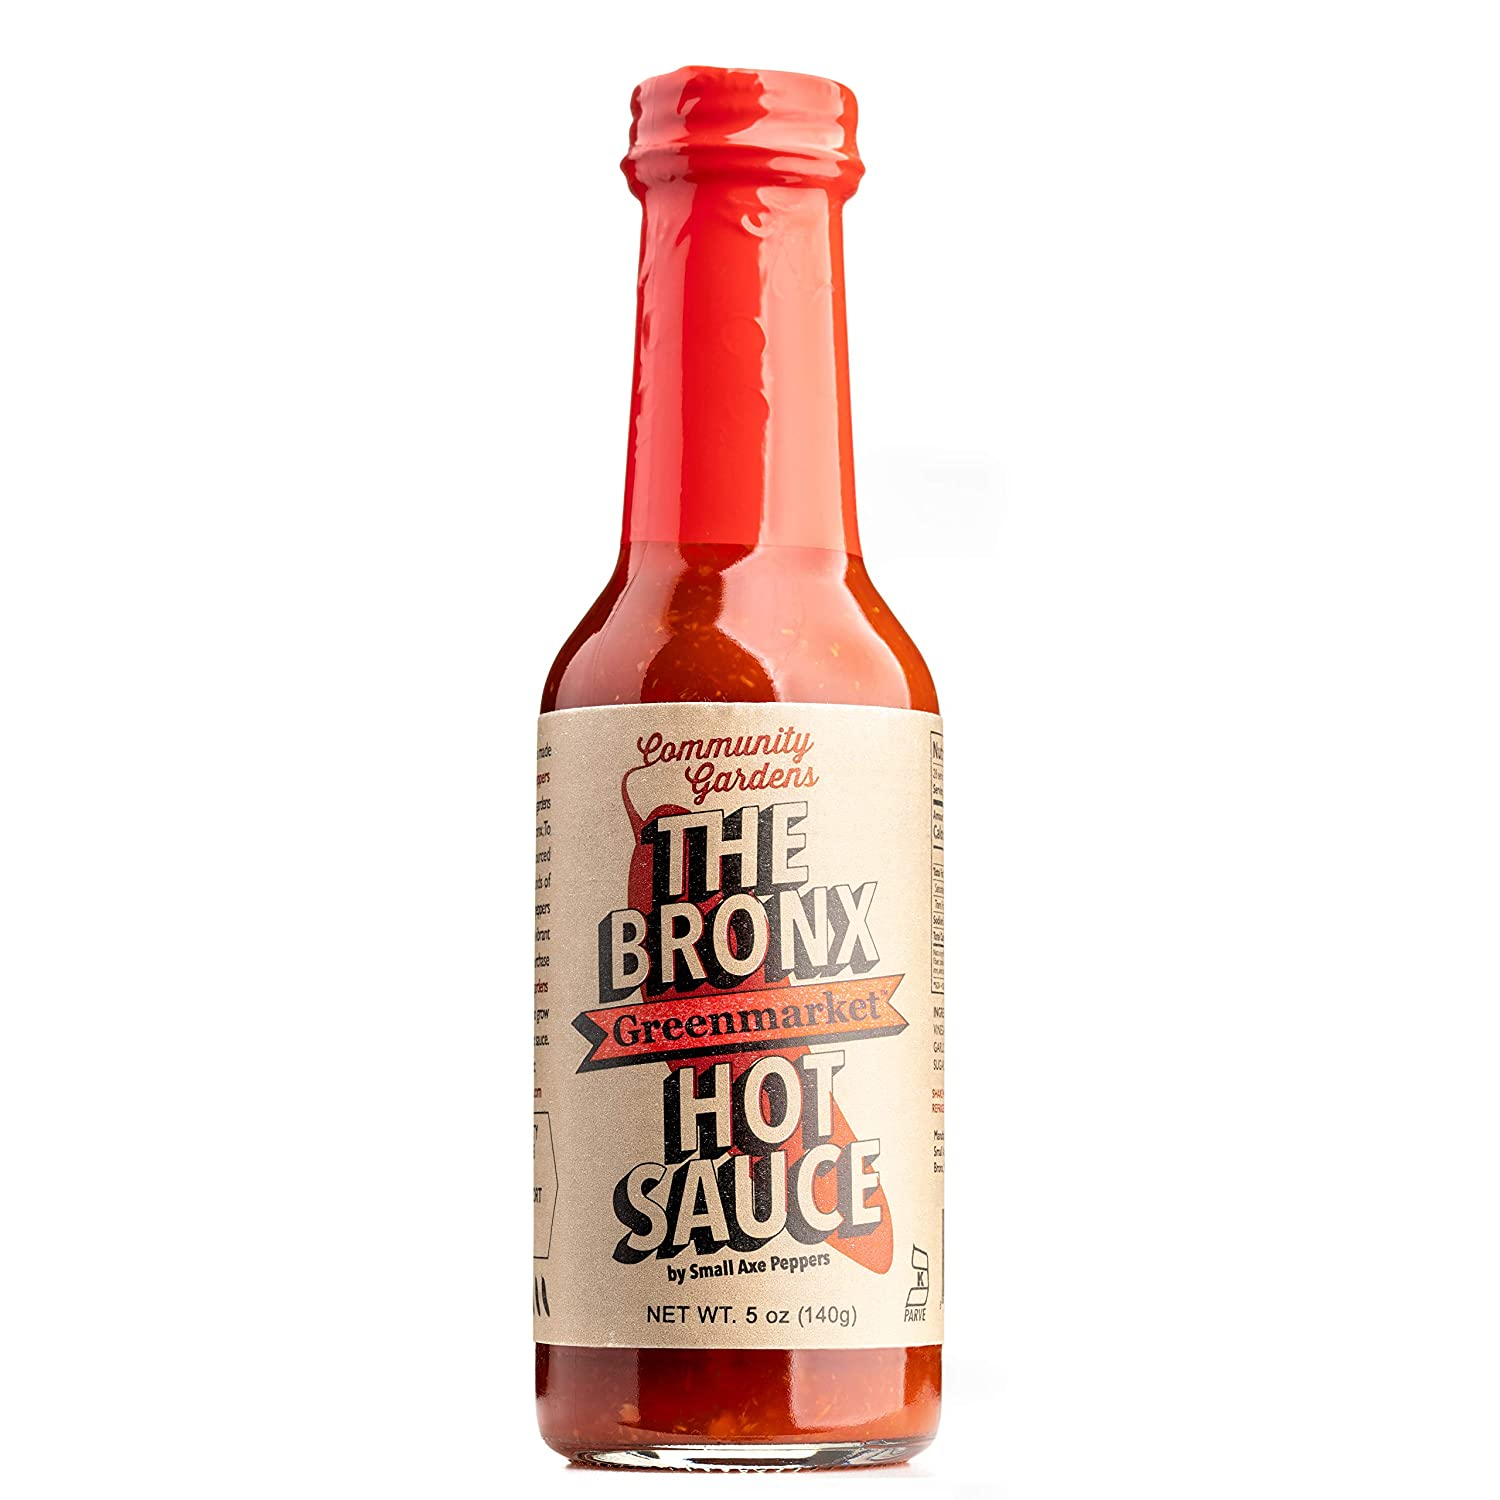 Small Axe Peppers The Bronx Greenmarket RED Hot Sauce, 5 oz